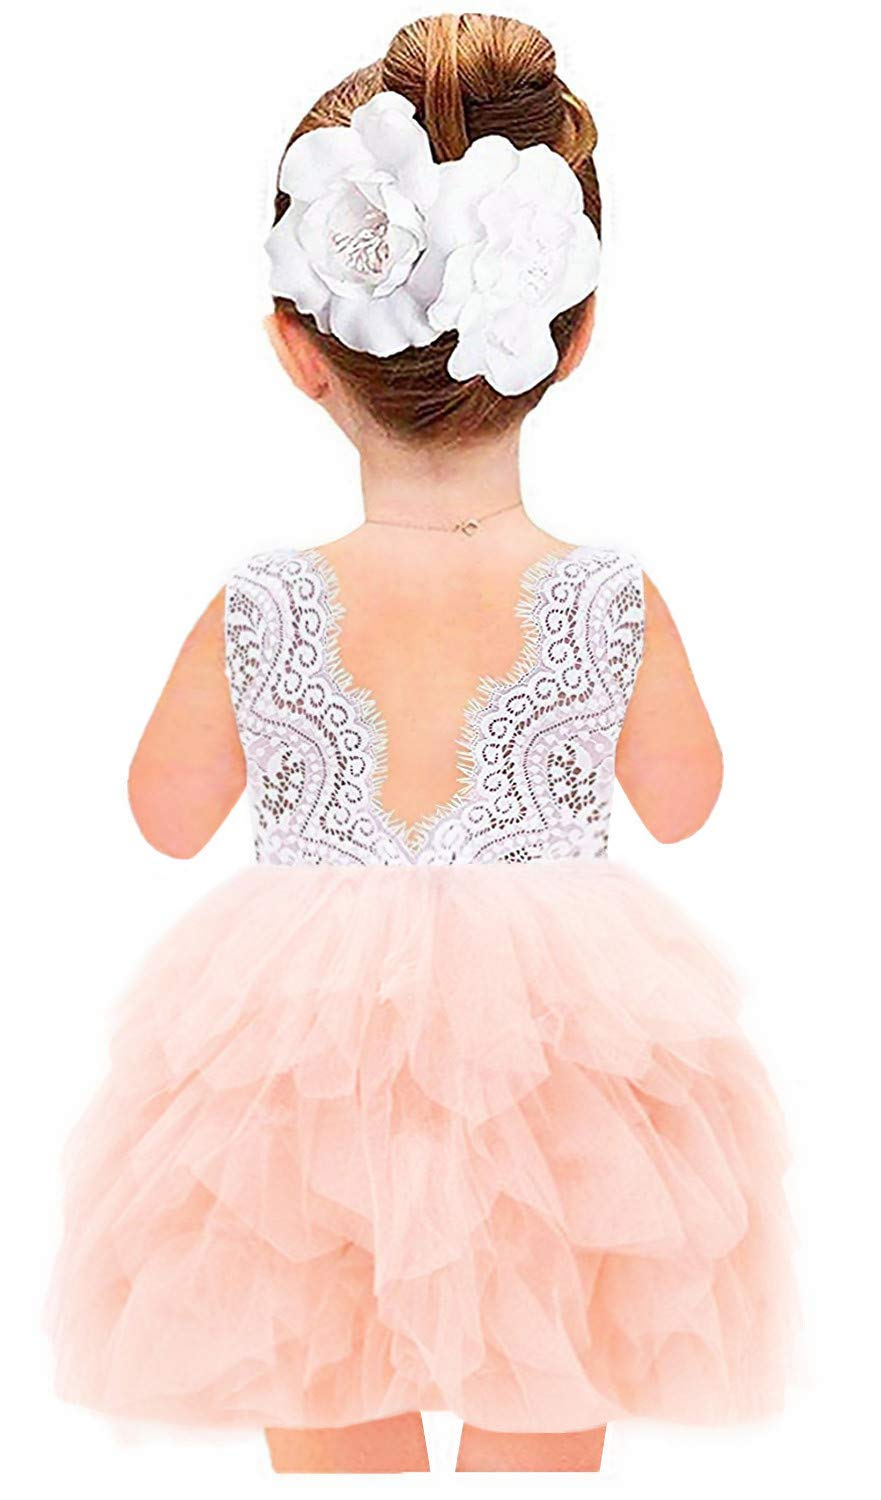 2Bunnies Girl Beaded Peony Lace Back A-Line Tiered Tutu Tulle Flower Girl Dress (Pink Sleeveless Short, 12 Months)